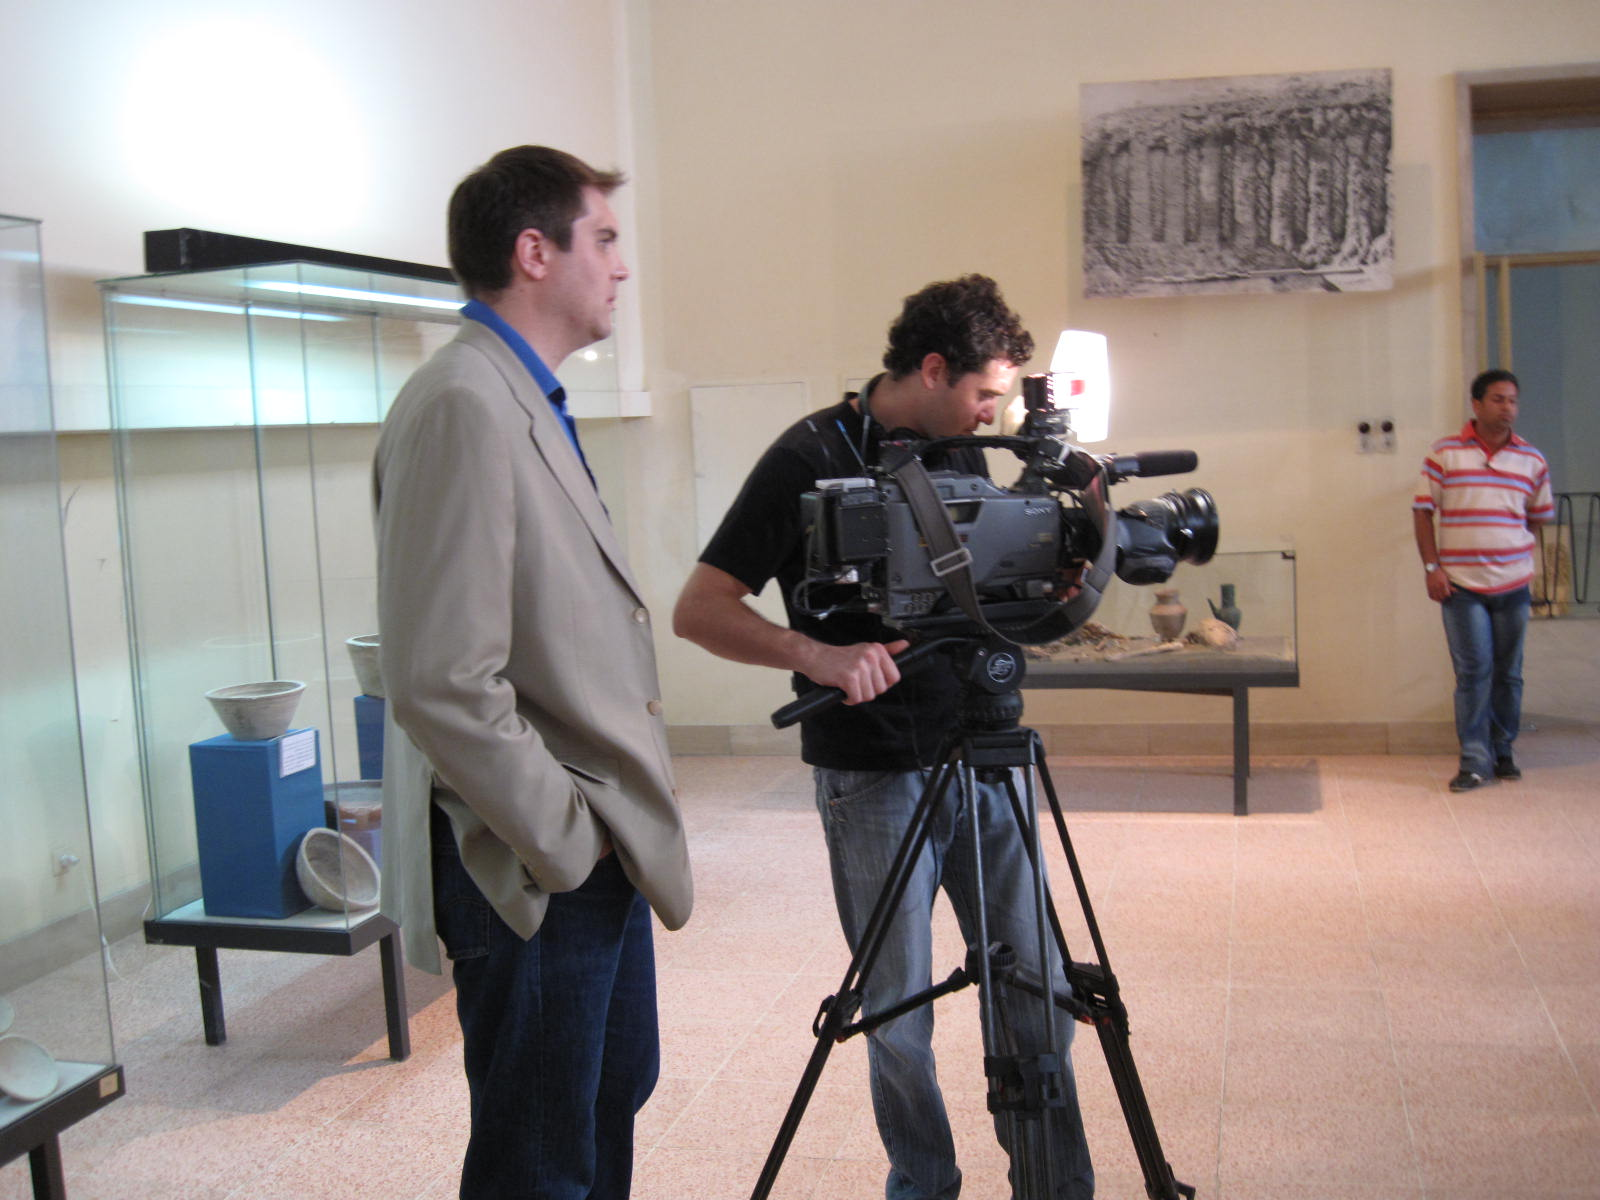 Mohammed Tawfeeq/CNN. CNN Correspondent Fred Pleitgen and Cameraman Ben Adams during the shoot